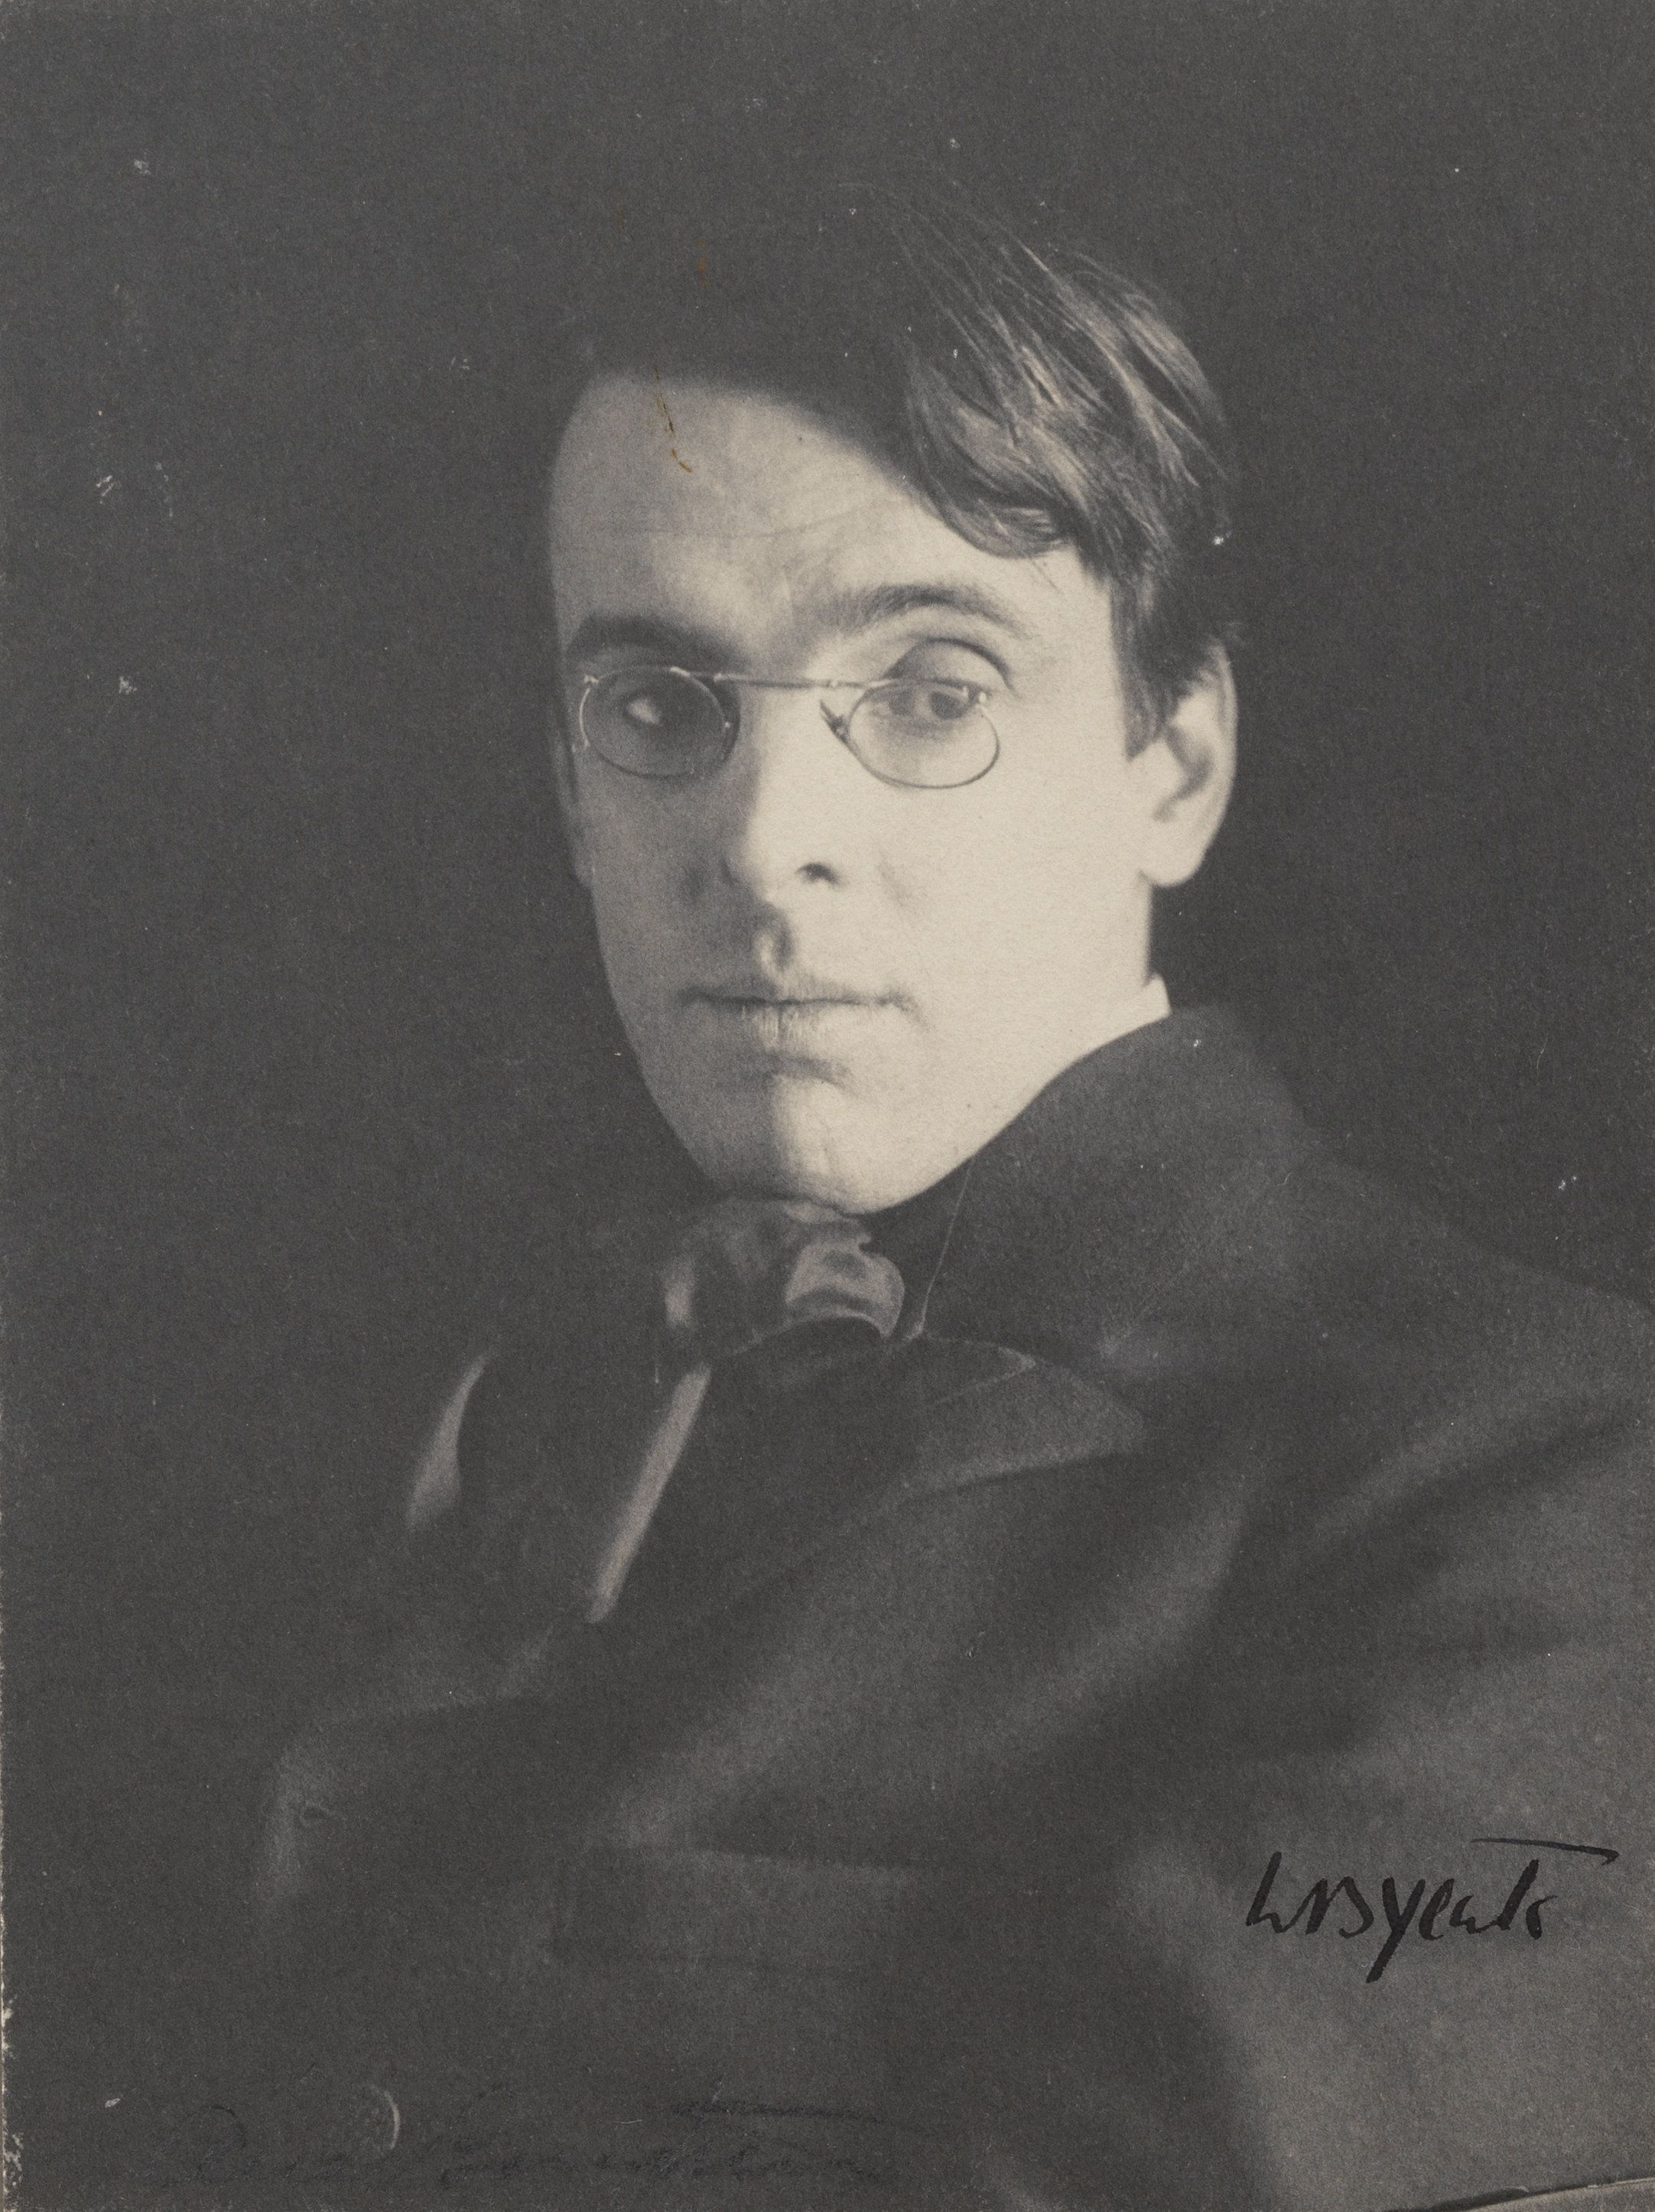 personal response to william yeats William butler yeats was one of the greatest english-language poets of the 20th century and received the nobel prize for literature in 1923 william butler yeats was born on june 13, 1865, in.